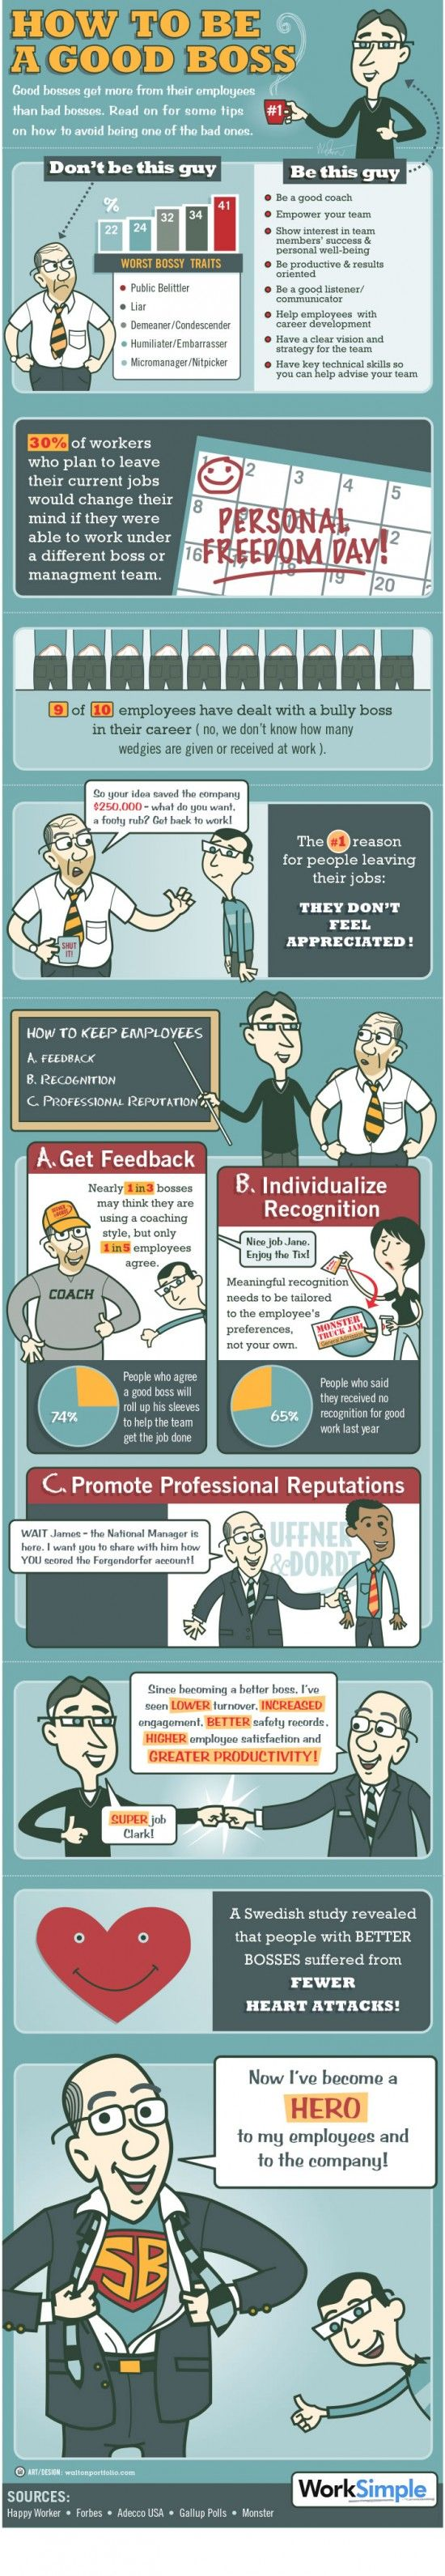 How to Be a Good Boss/Team Leader/ Any people oriented leadership position